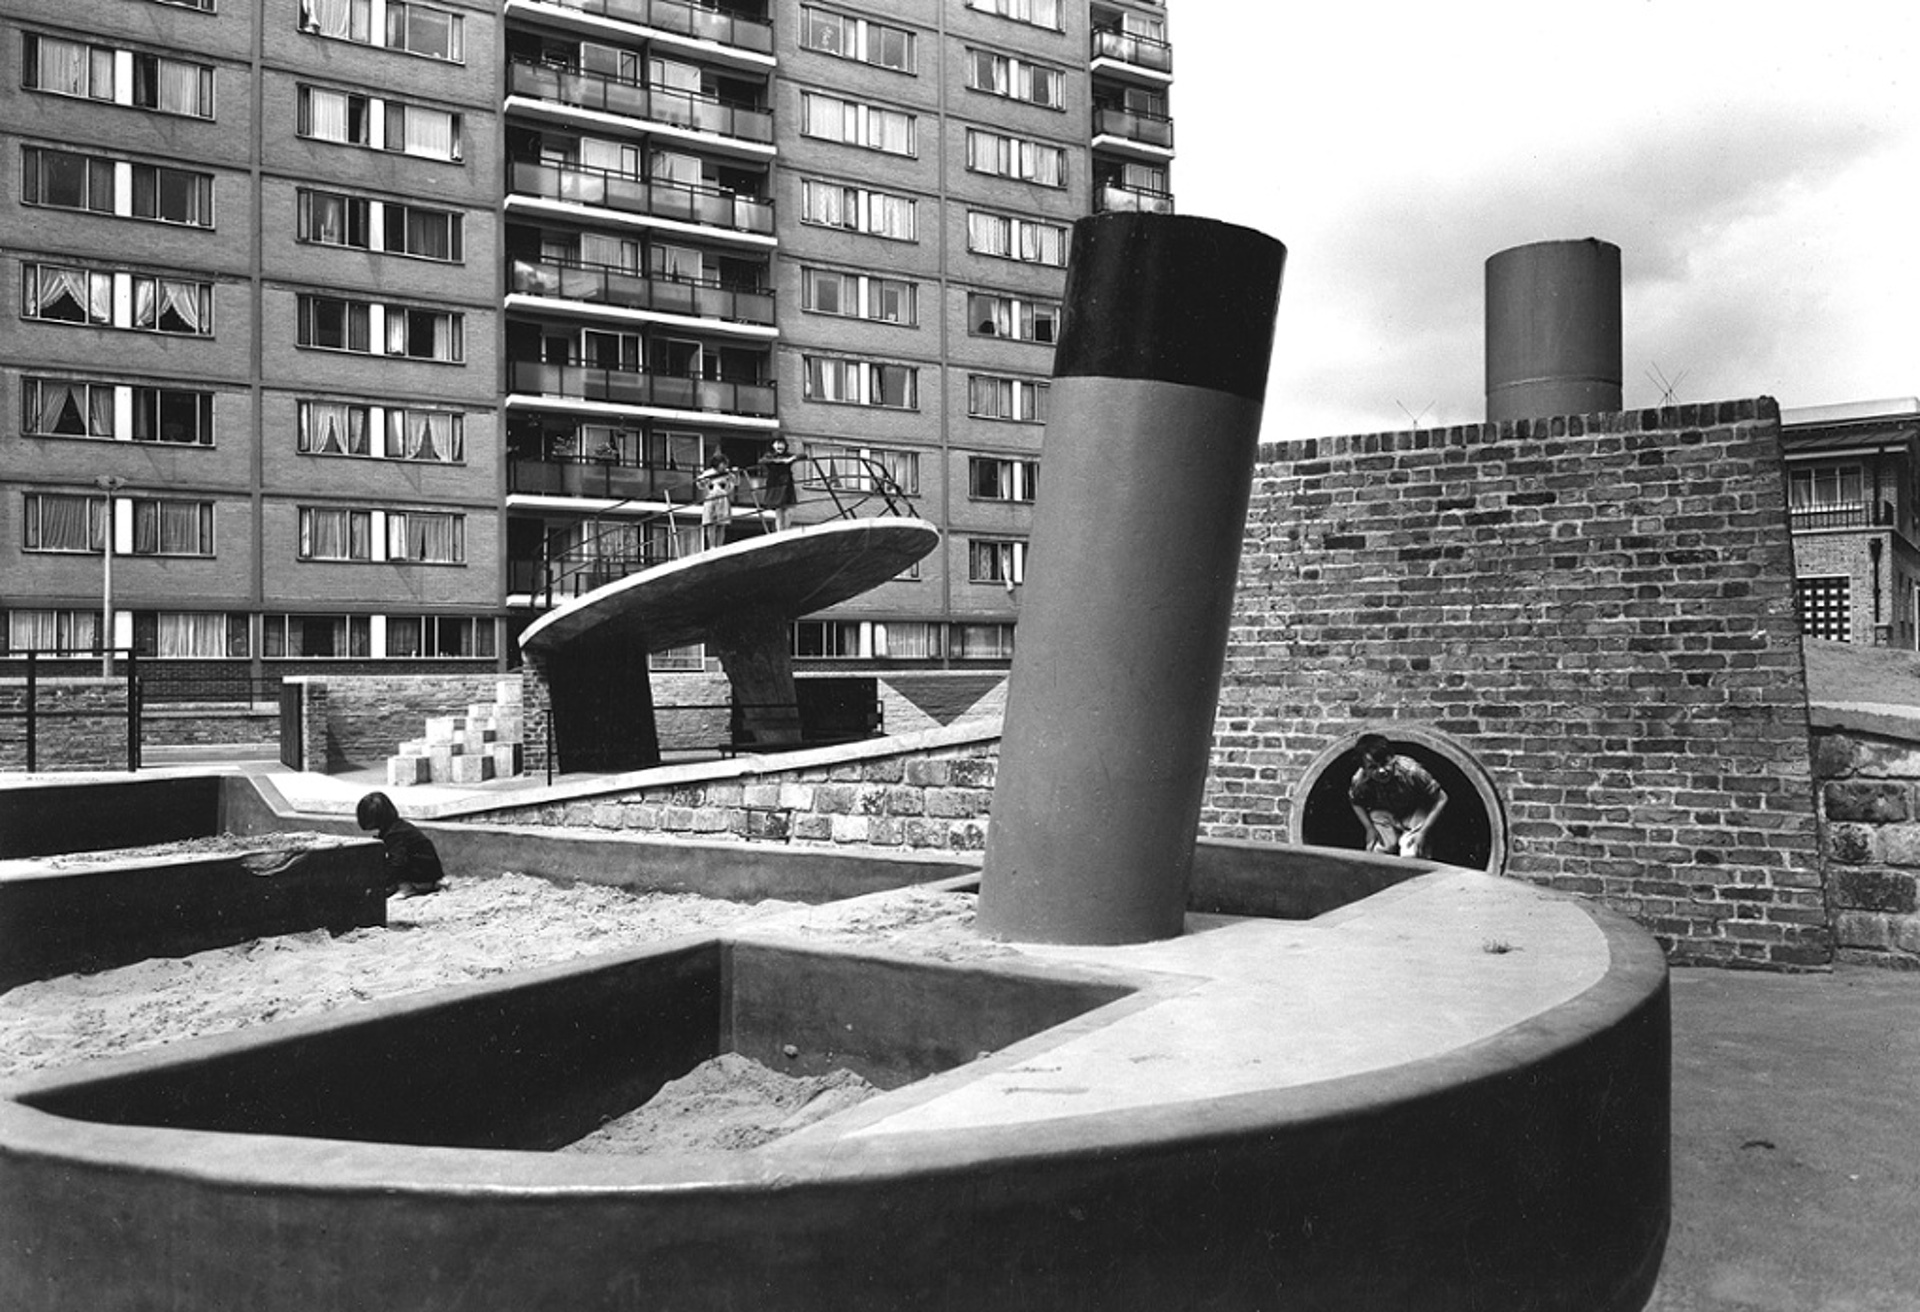 Churchill Gardens estate, Pimlico, 1956